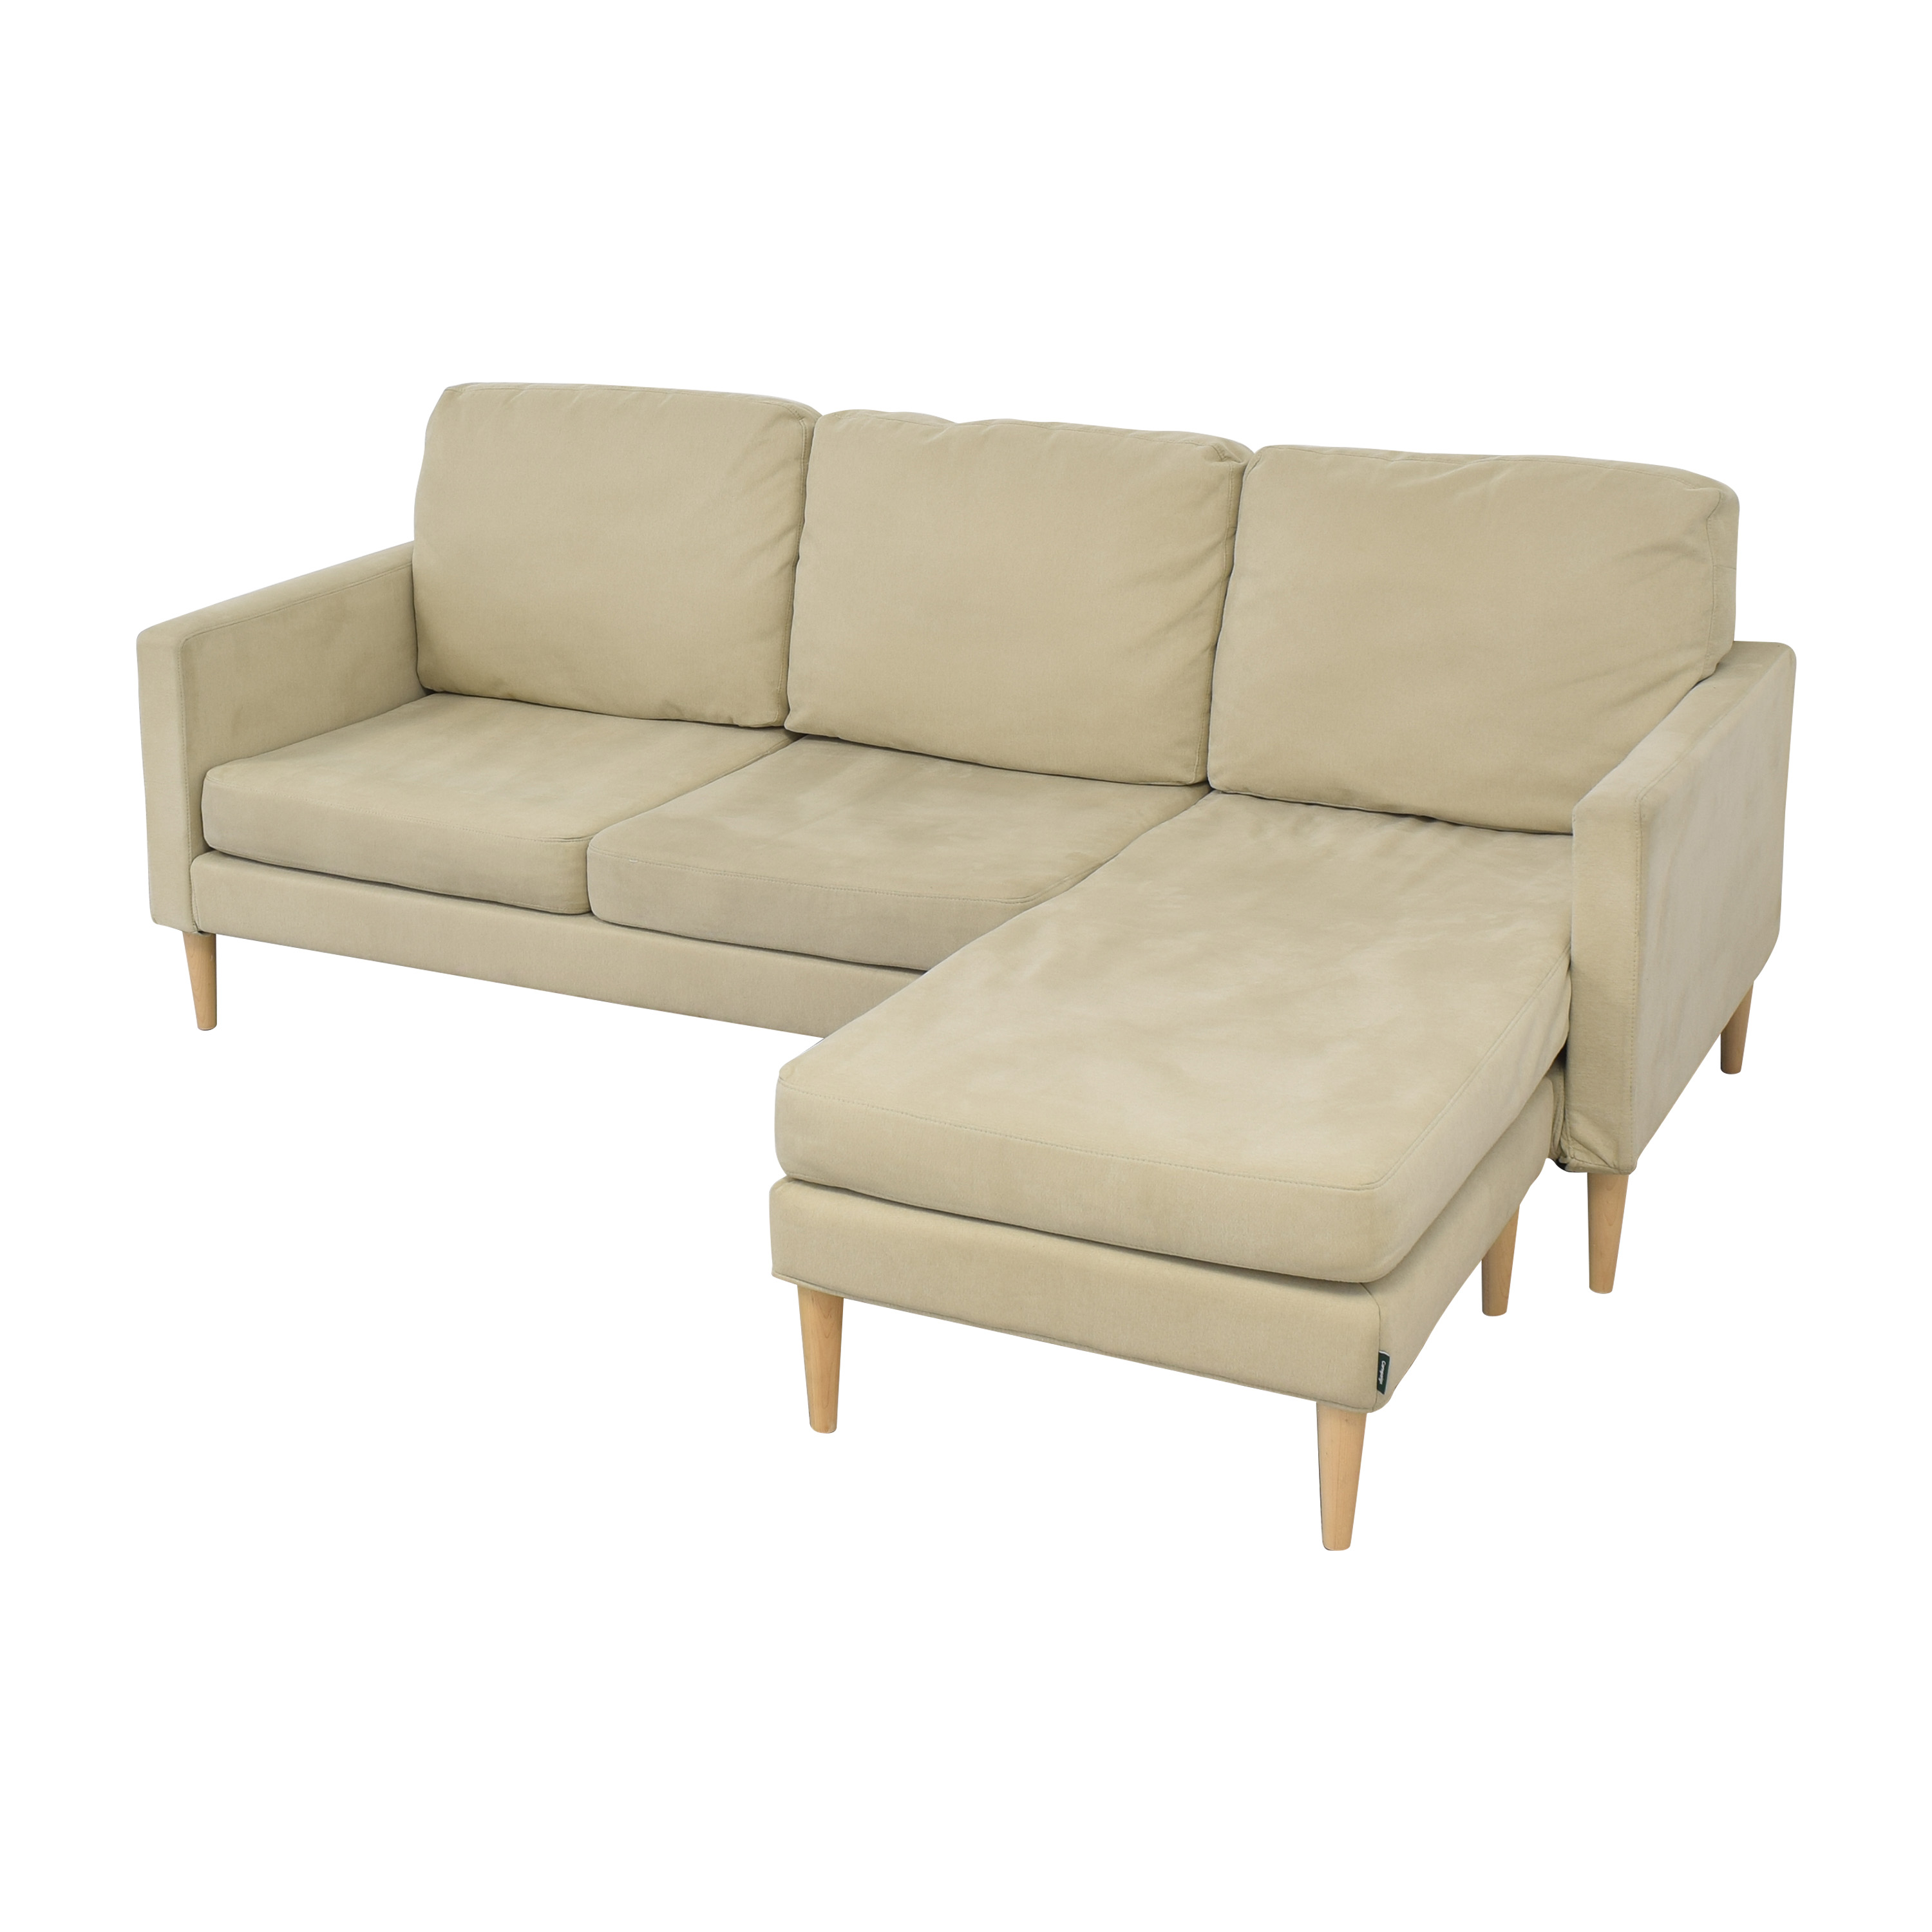 Campaign Modern Sectional Sofa / Sectionals